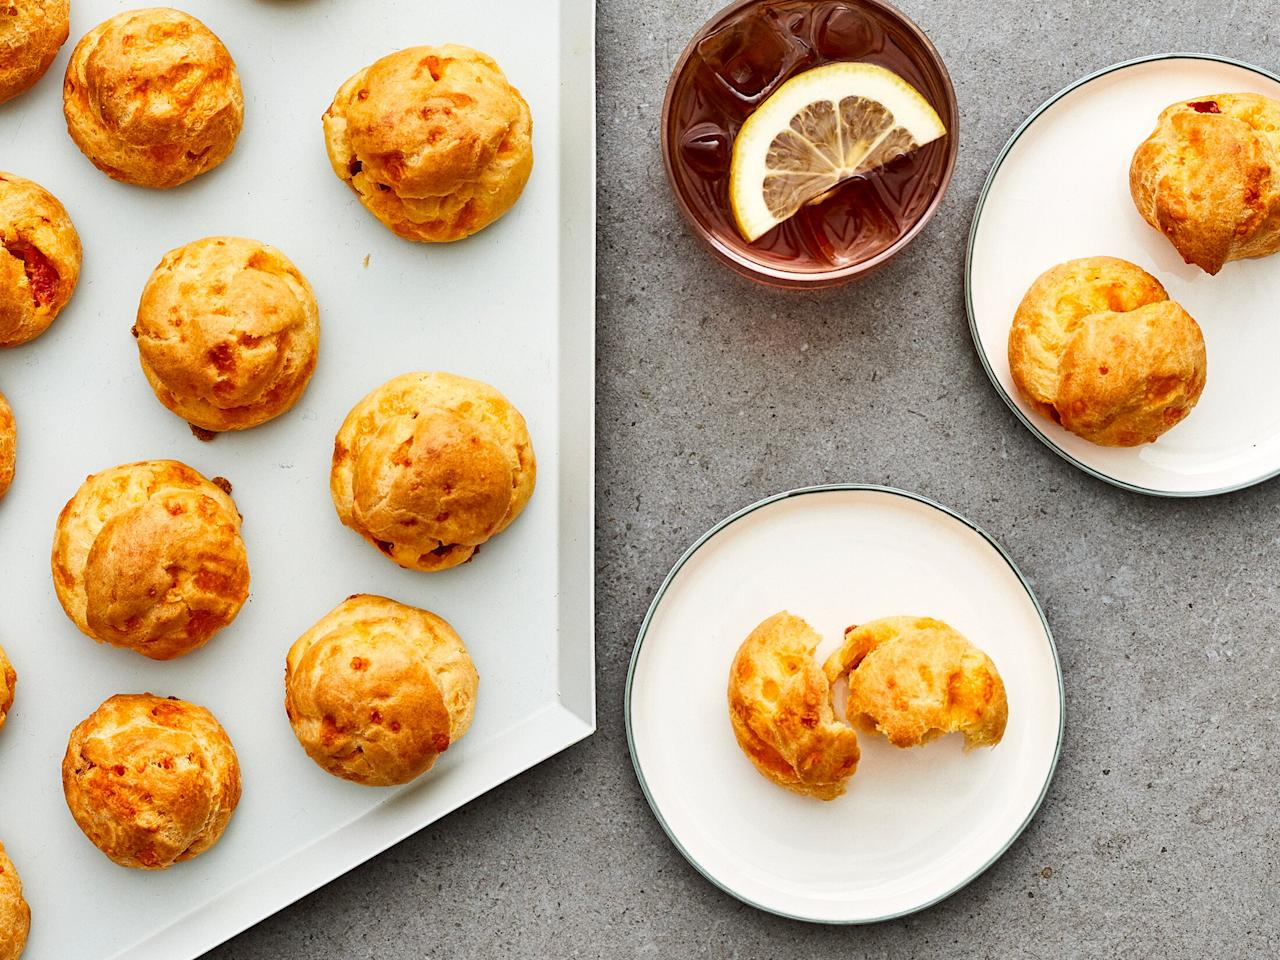 "<p>Classic French gougères with a Southern remix. These airy pimiento cheese puffs make an impressive addition to virtually any party spread. While the choux pastry dough may seem intimidating to make, trust us—success is just a matter of not walking away from the pan. As long as you can stay put and keep stirring (so that your dough doesn't burn), you can make gougères. </p> <p><a href=""https://www.myrecipes.com/recipe/pimento-cheese-puffs"">Pimento Cheese Puffs Recipe</a></p>"